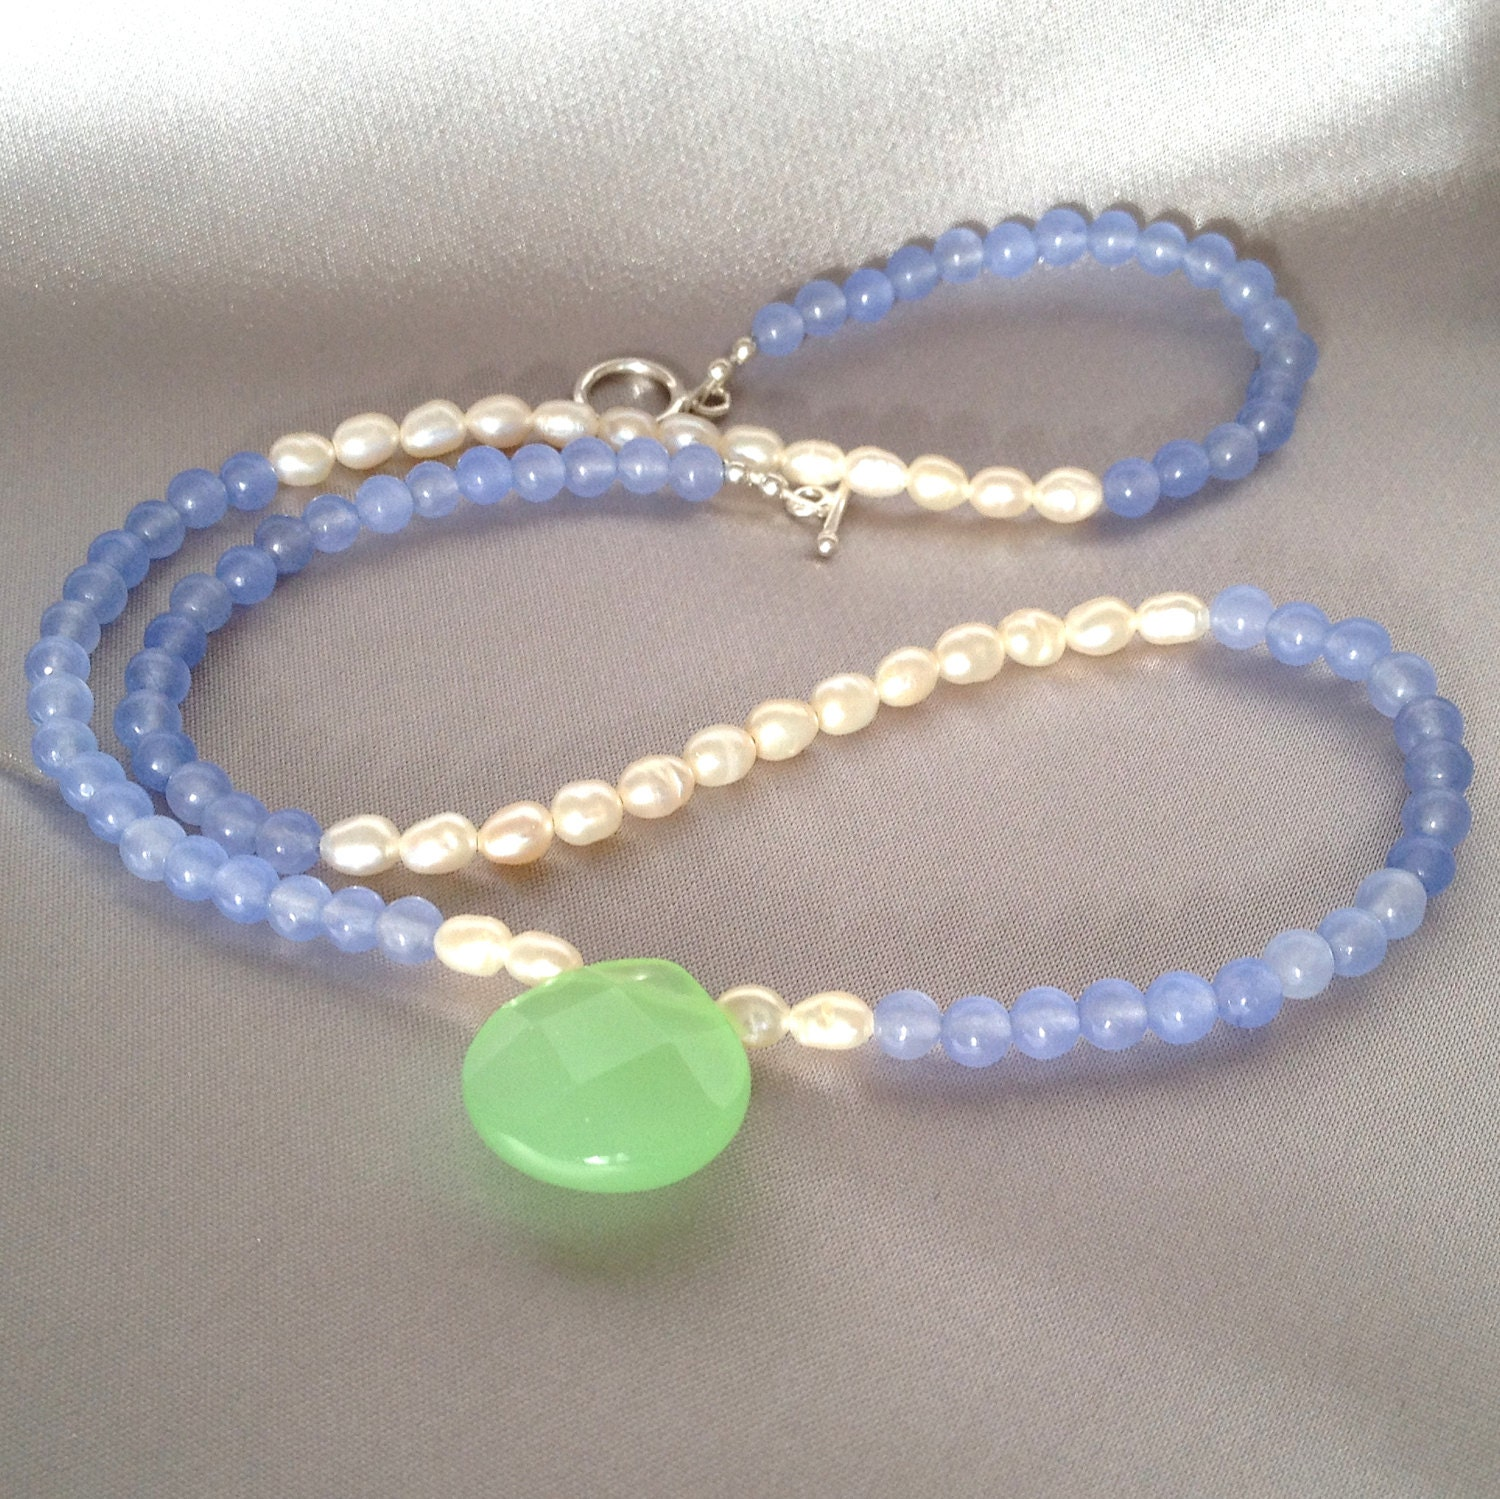 Multigemstone necklace lavender jade beaded necklace with freshwater pearls and apple green chalcedony pendant